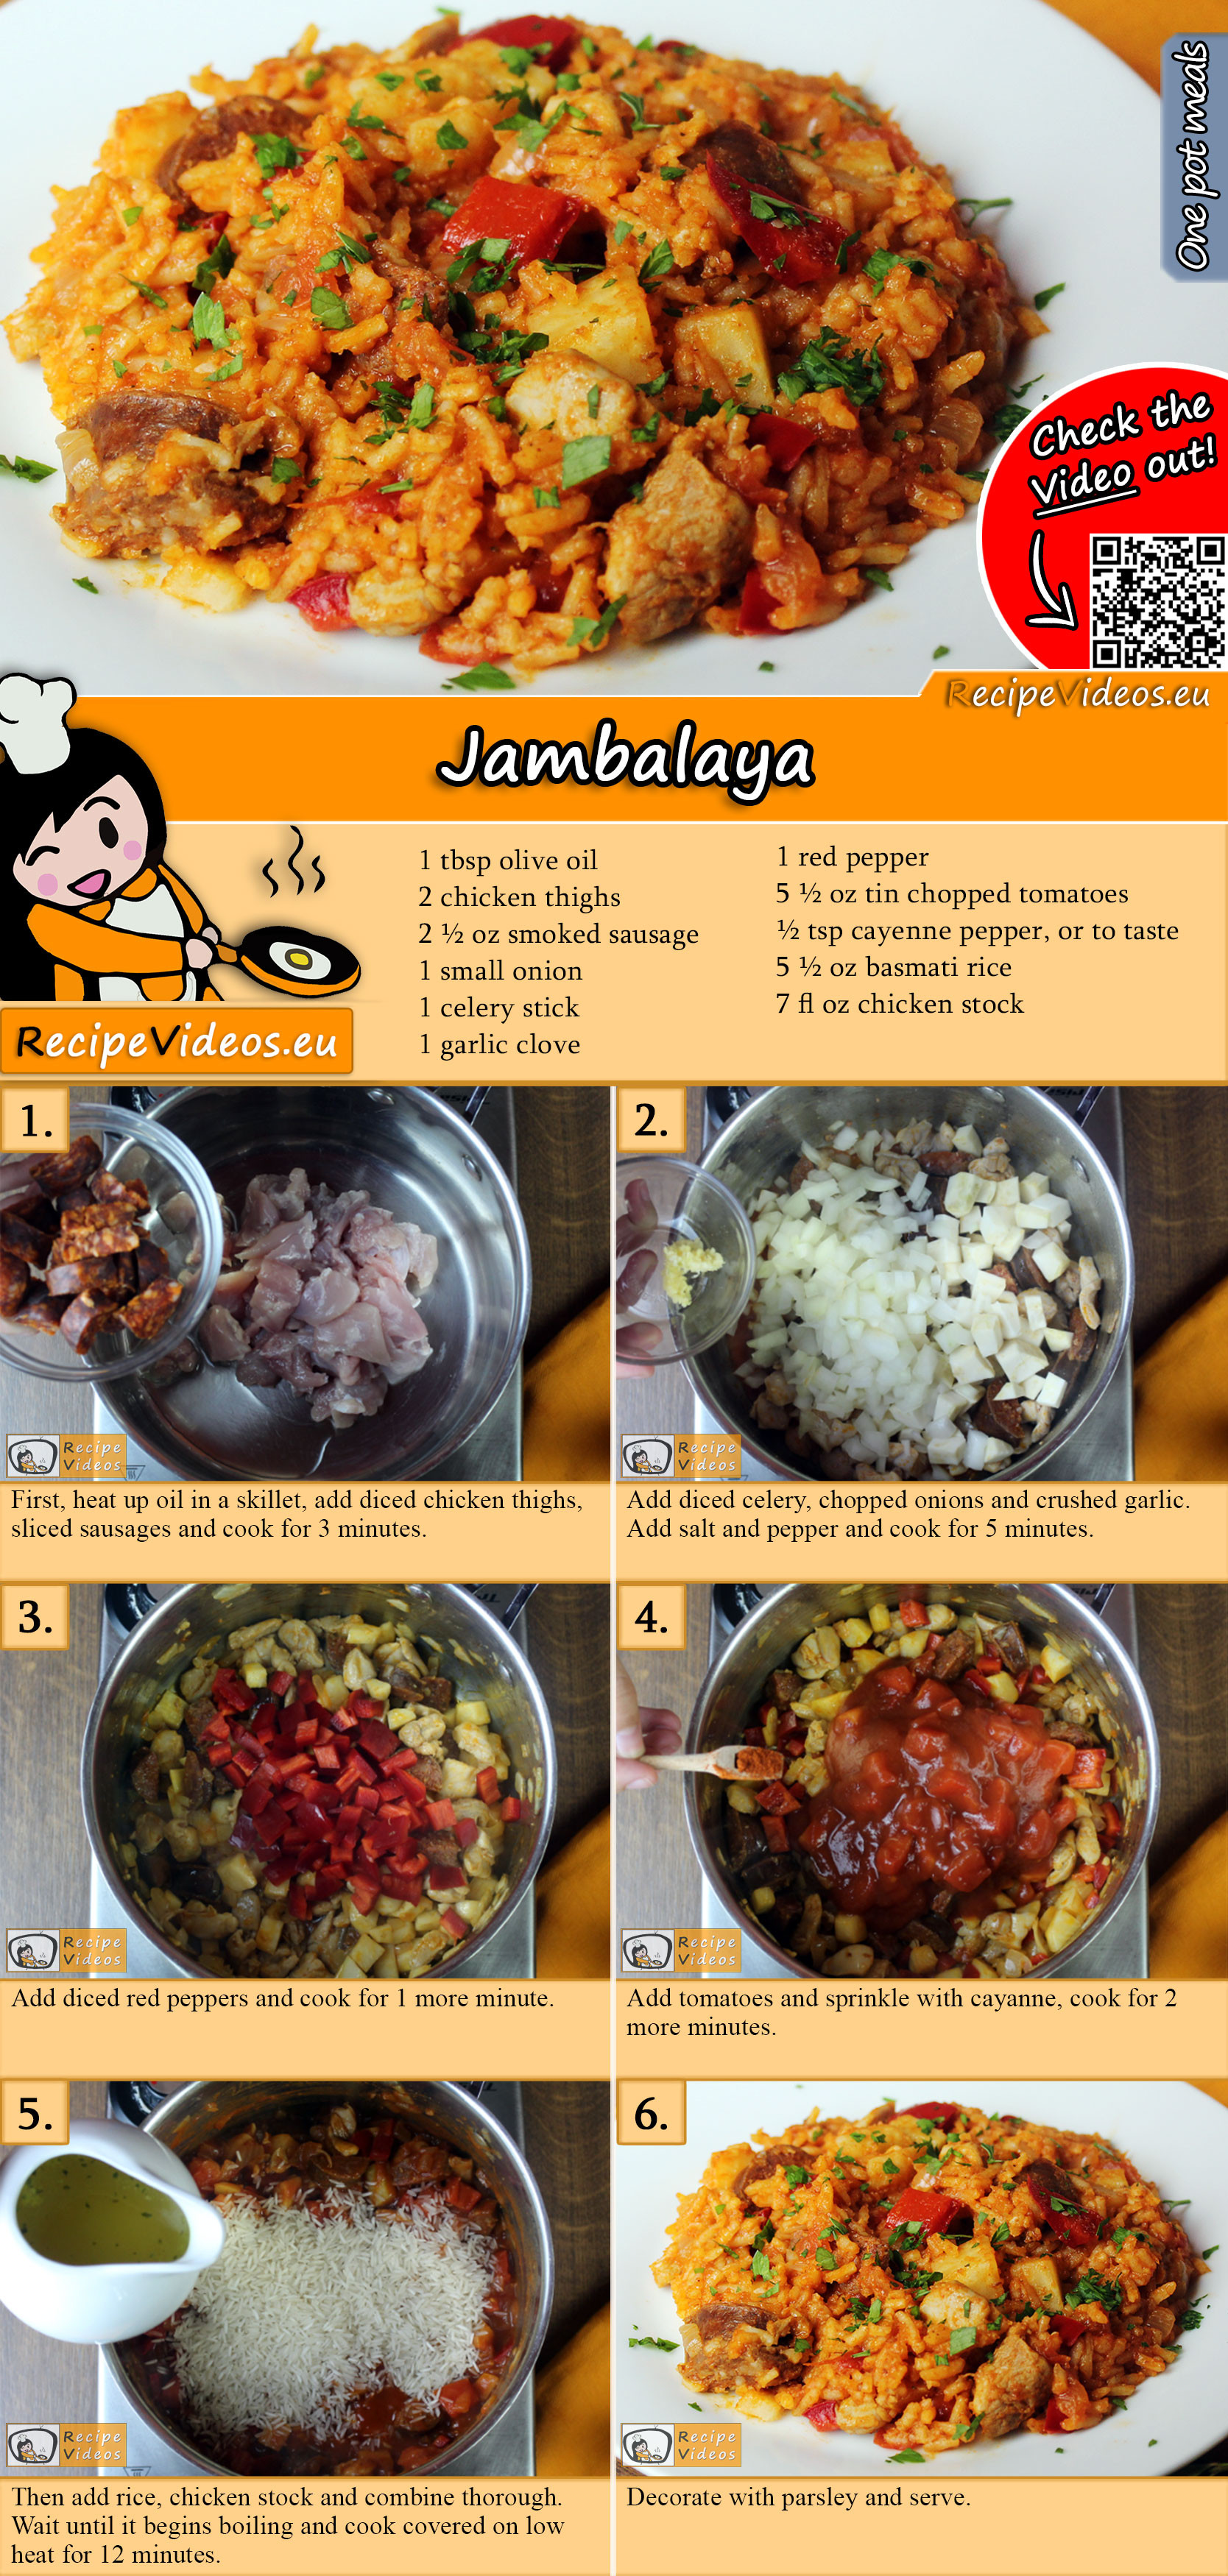 Jambalaya recipe with video